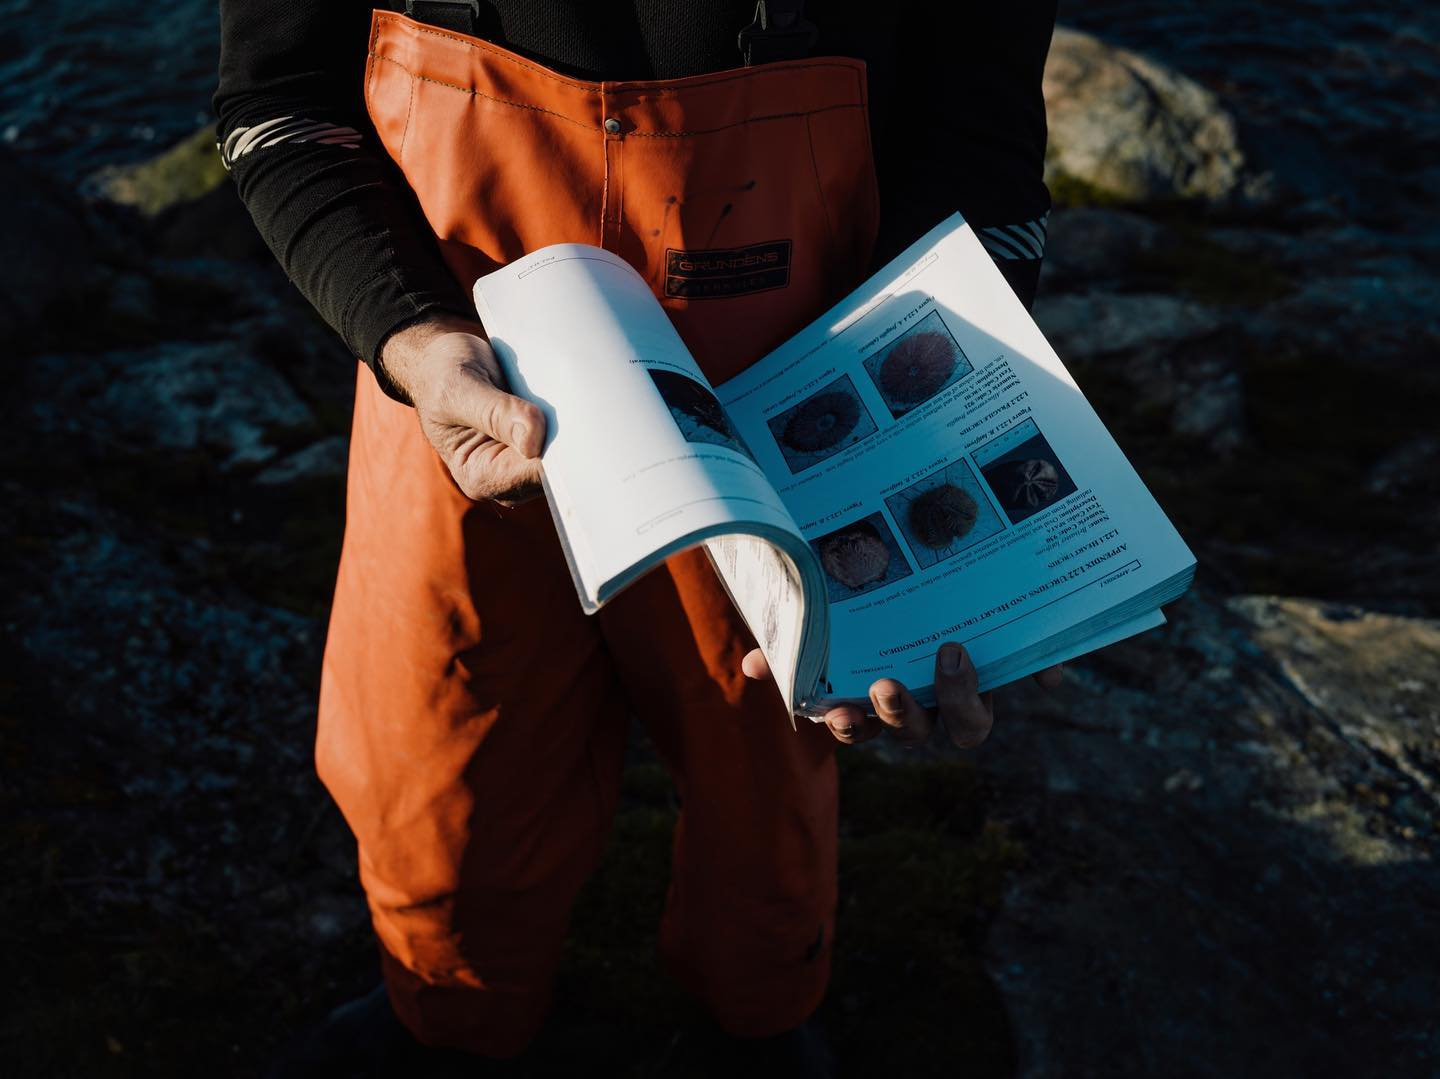 Hands and torso of a person in orange overalls holding a book with small square photographs